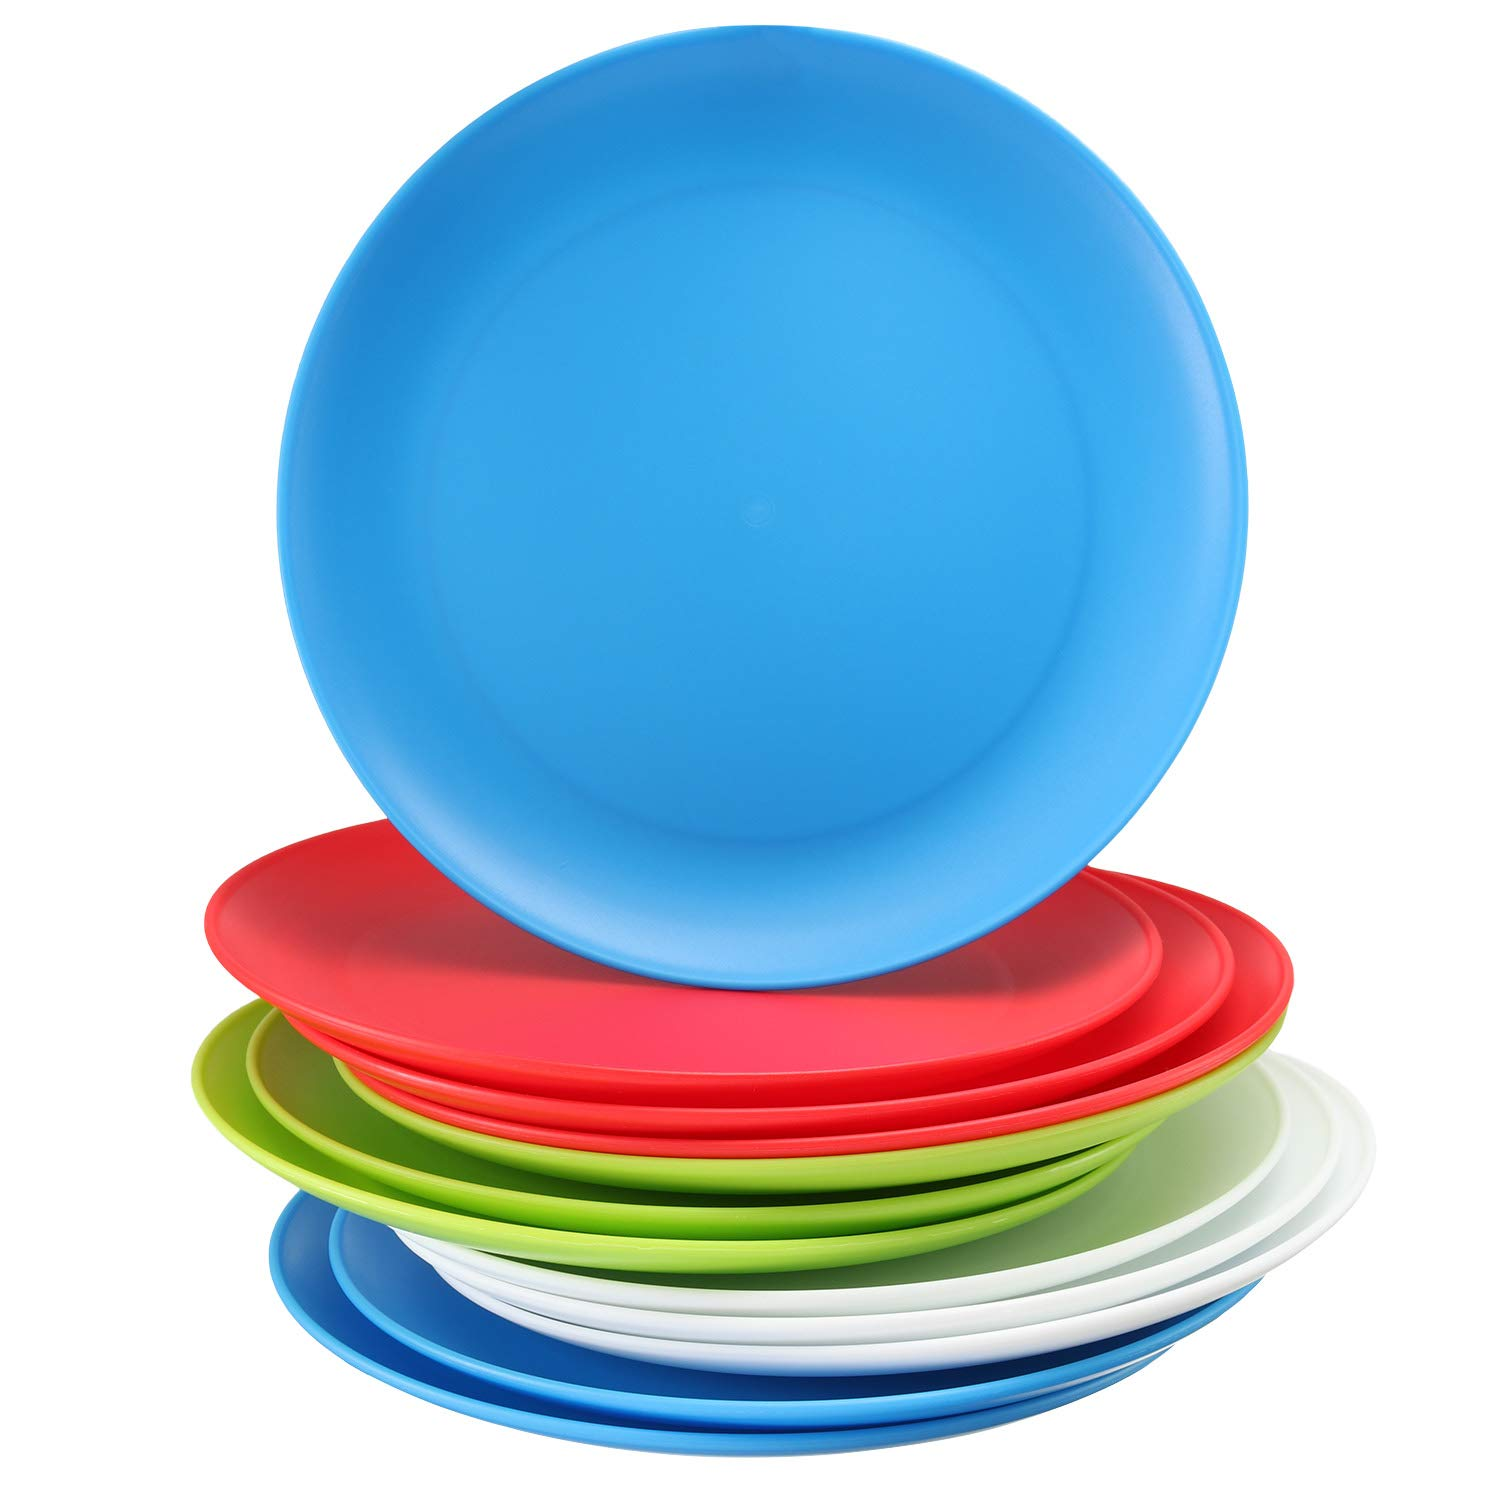 Set of 12 – Plastic Kids Plates - 9 Inch Kid Plates - Reusable Kids plate – Dinner Plastic Plates for Kids - BPA Free Food Safe - Assorted Colors kid Plates - Microwave Dishwasher Safe